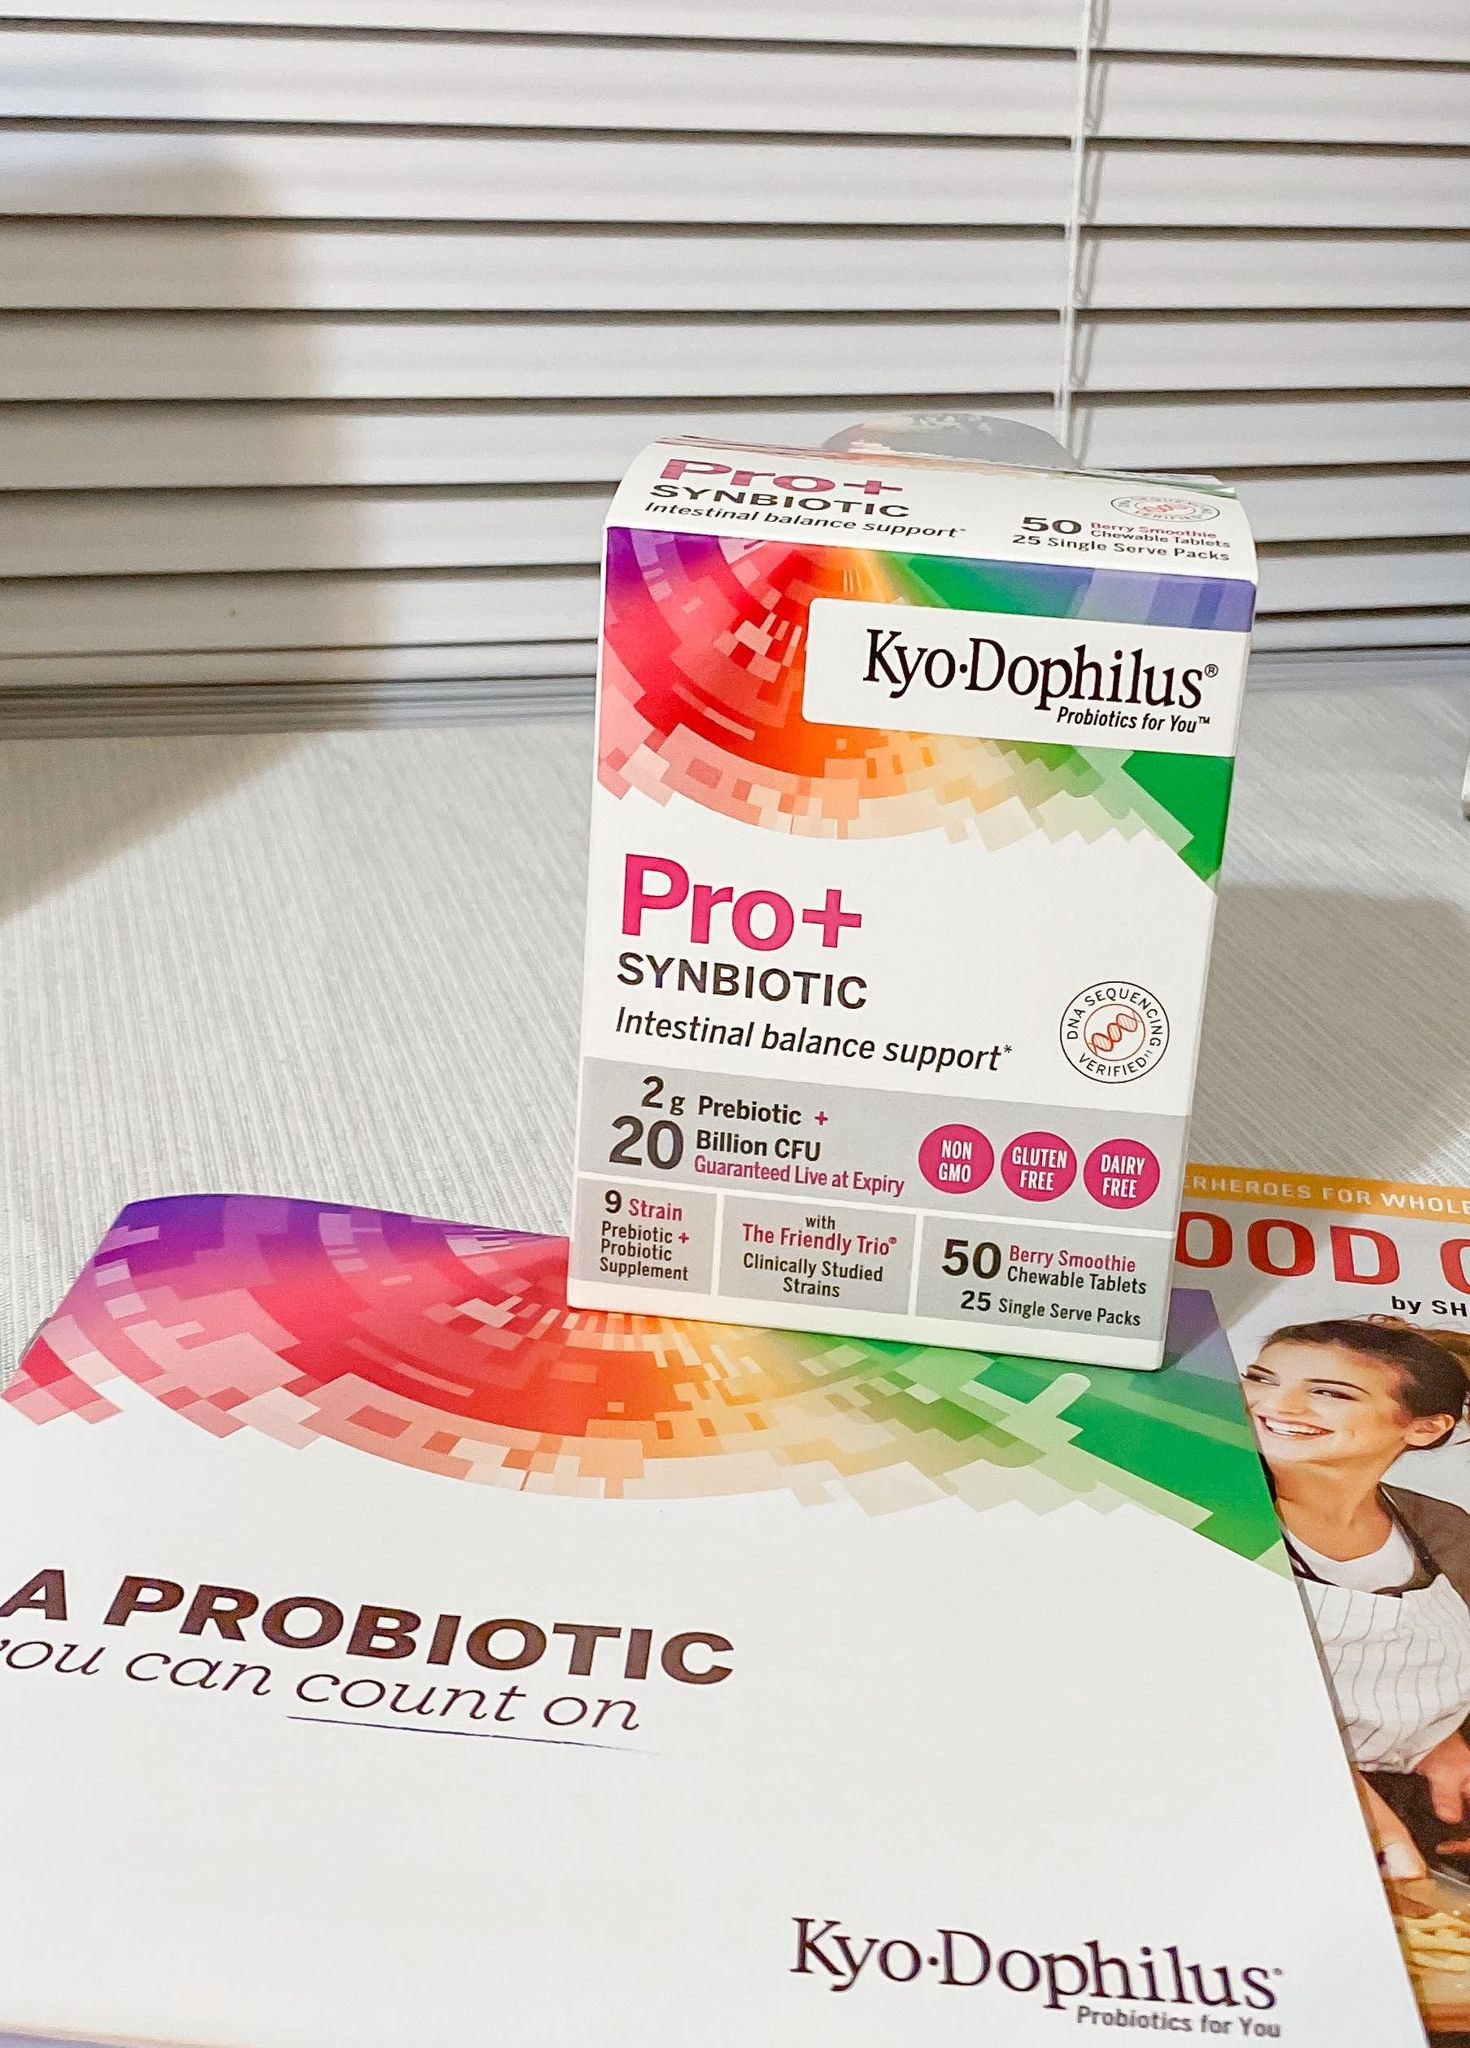 Kyo-Dophilus may be the probiotic for you